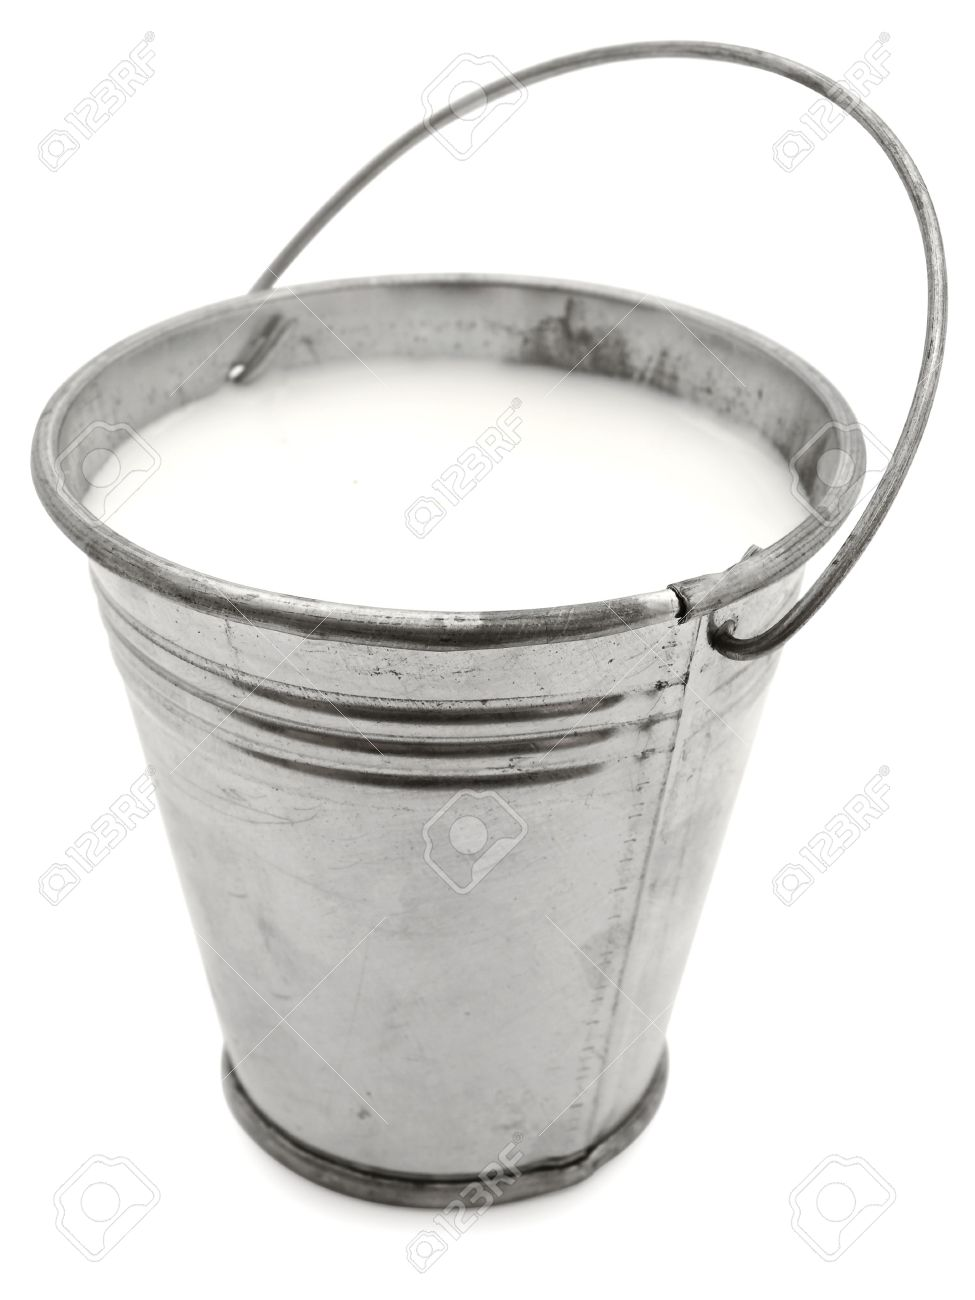 Metal Bucket With Milk Against The White Background Stock Photo 975x1300